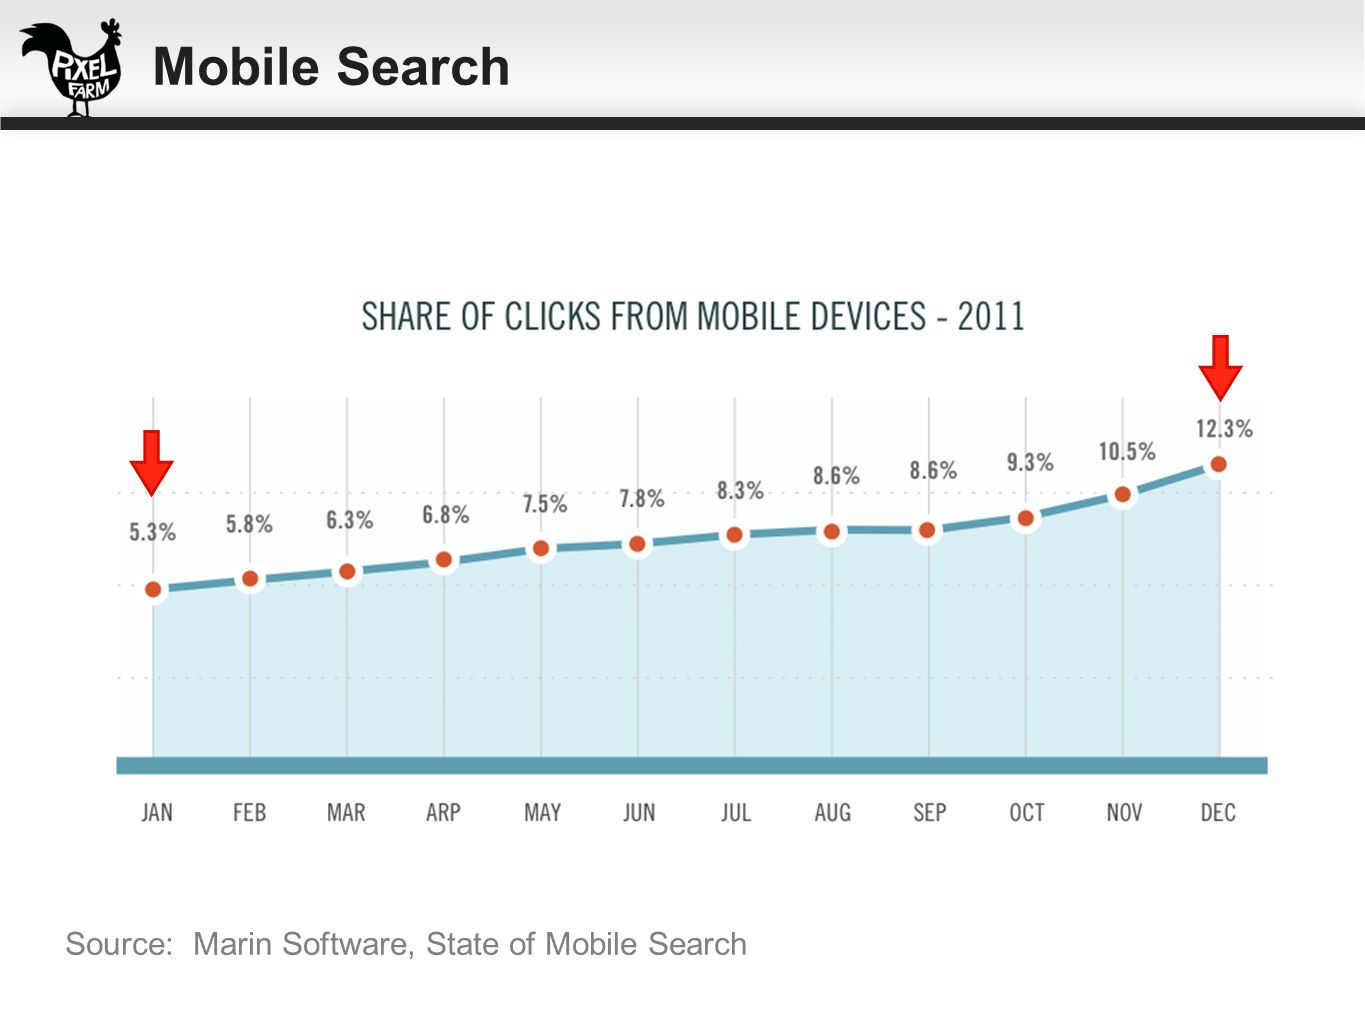 Mobile Search Source: Marin Software, State of Mobile Search